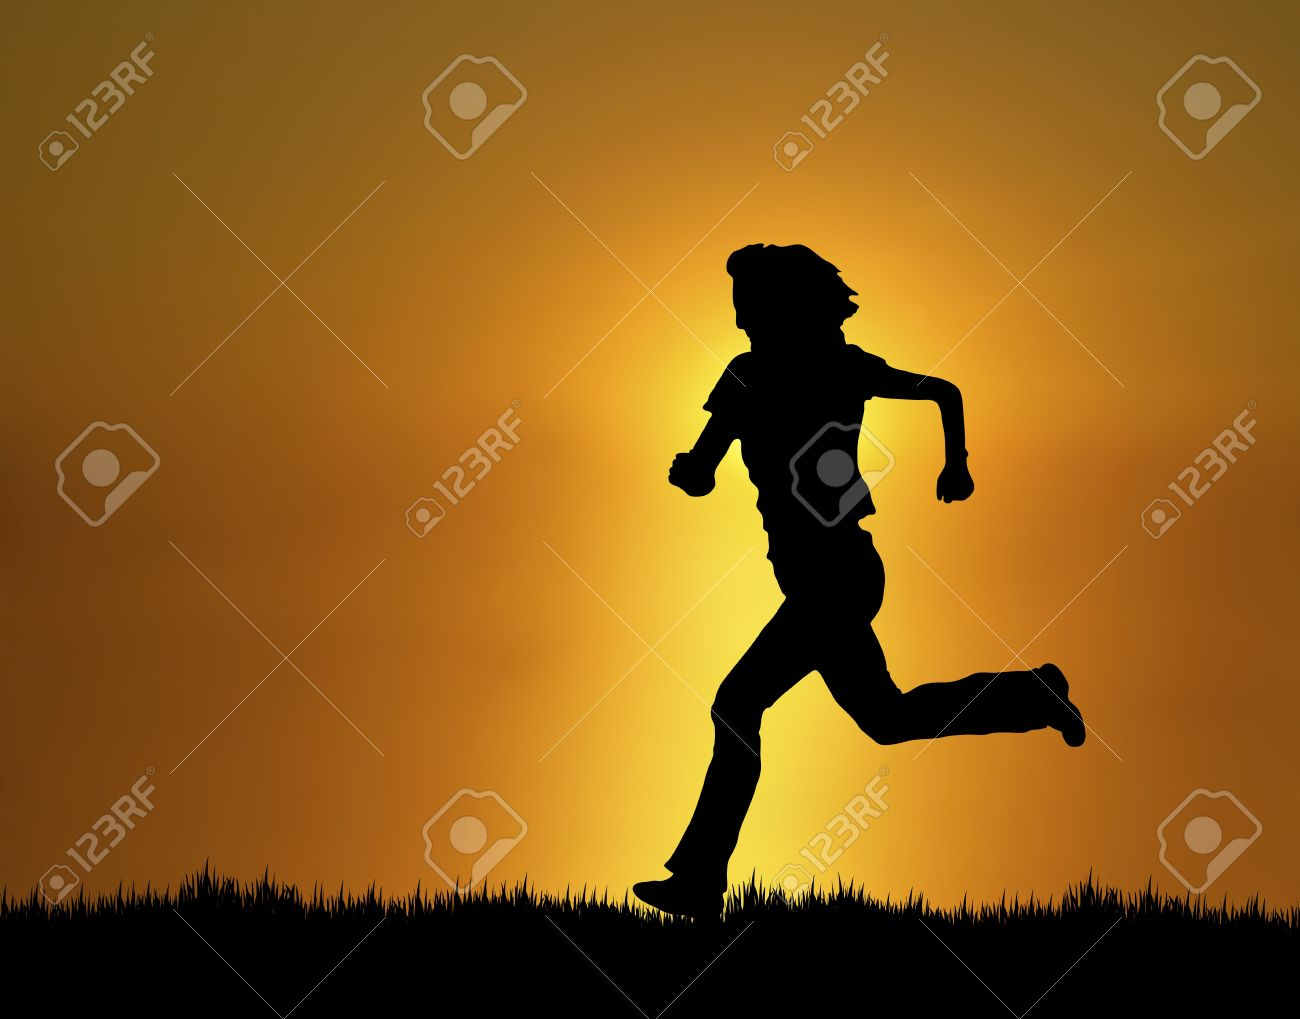 silhouette of woman running at sunset/sunrise Stock Photo - 3813780